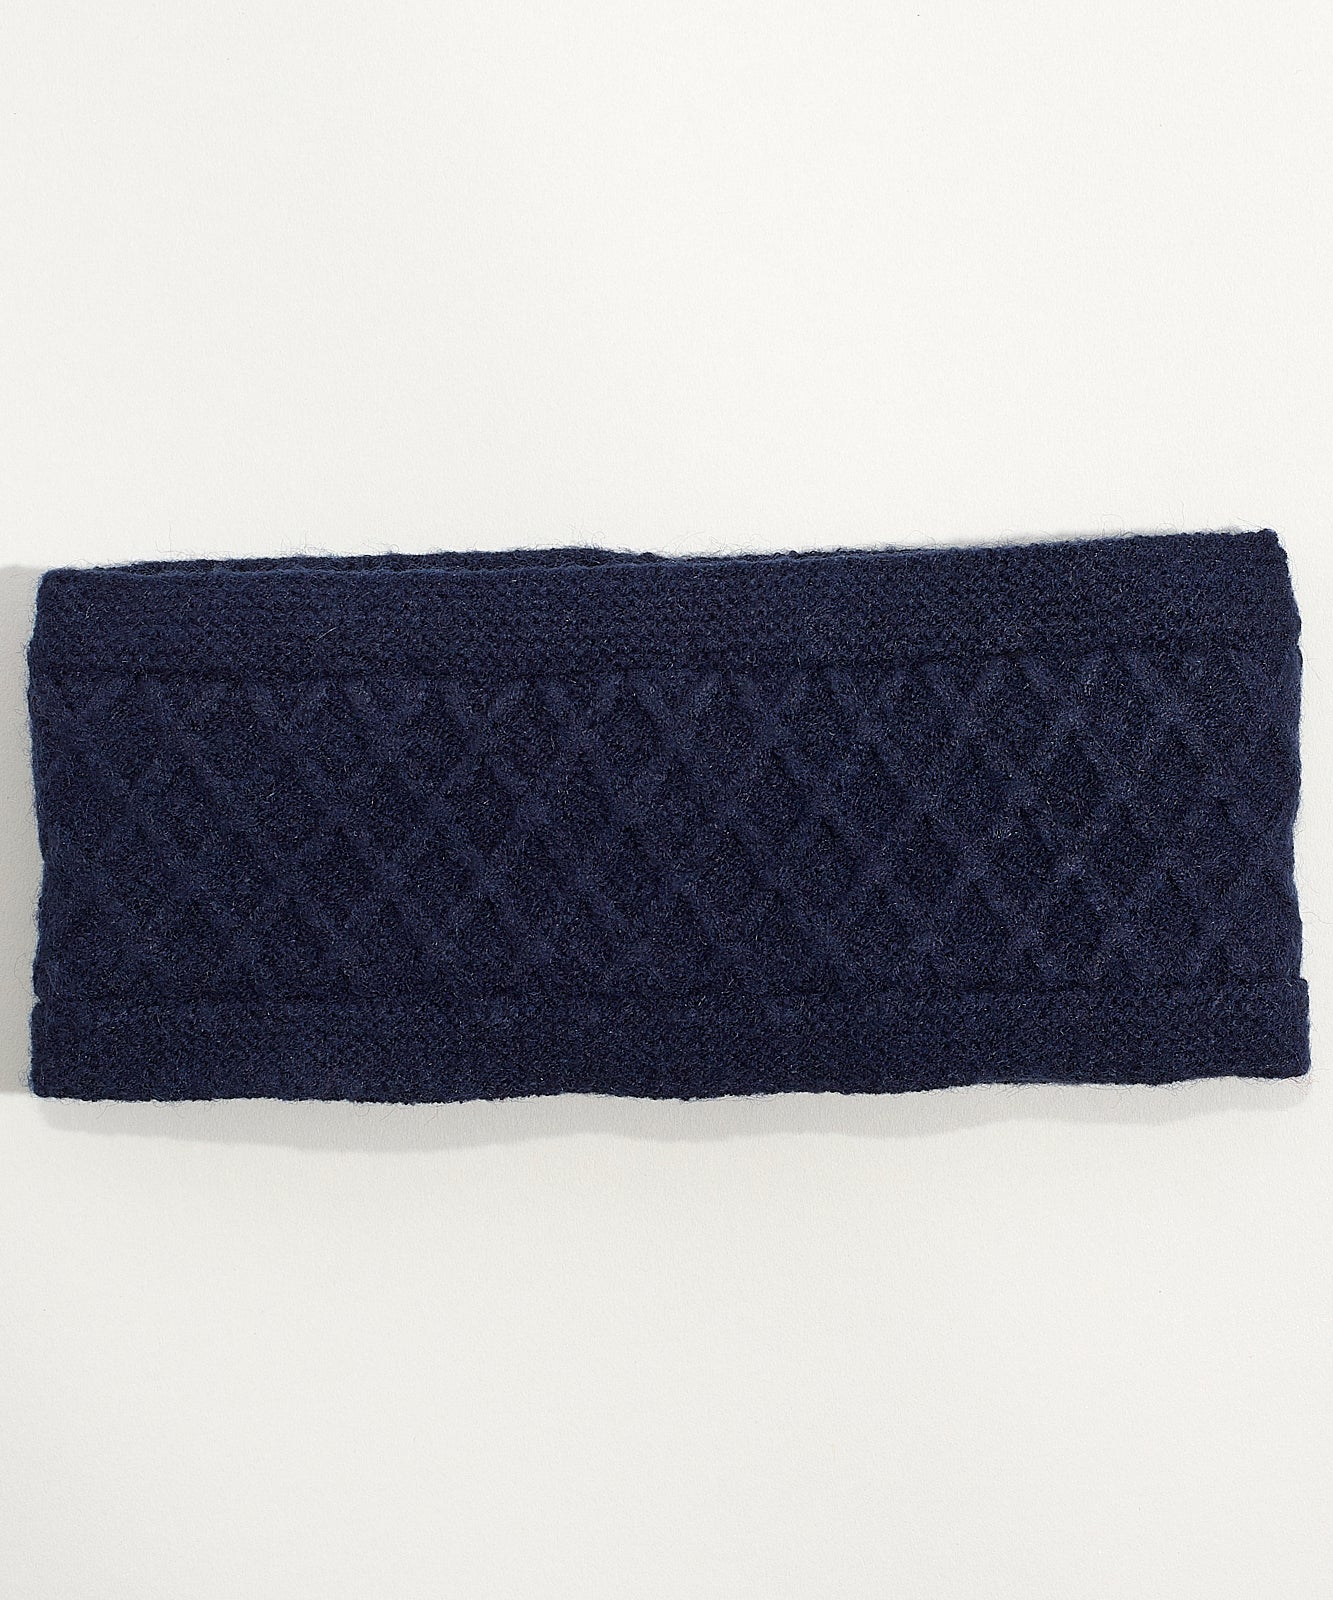 Echo Navy - Diamond Cable Headband